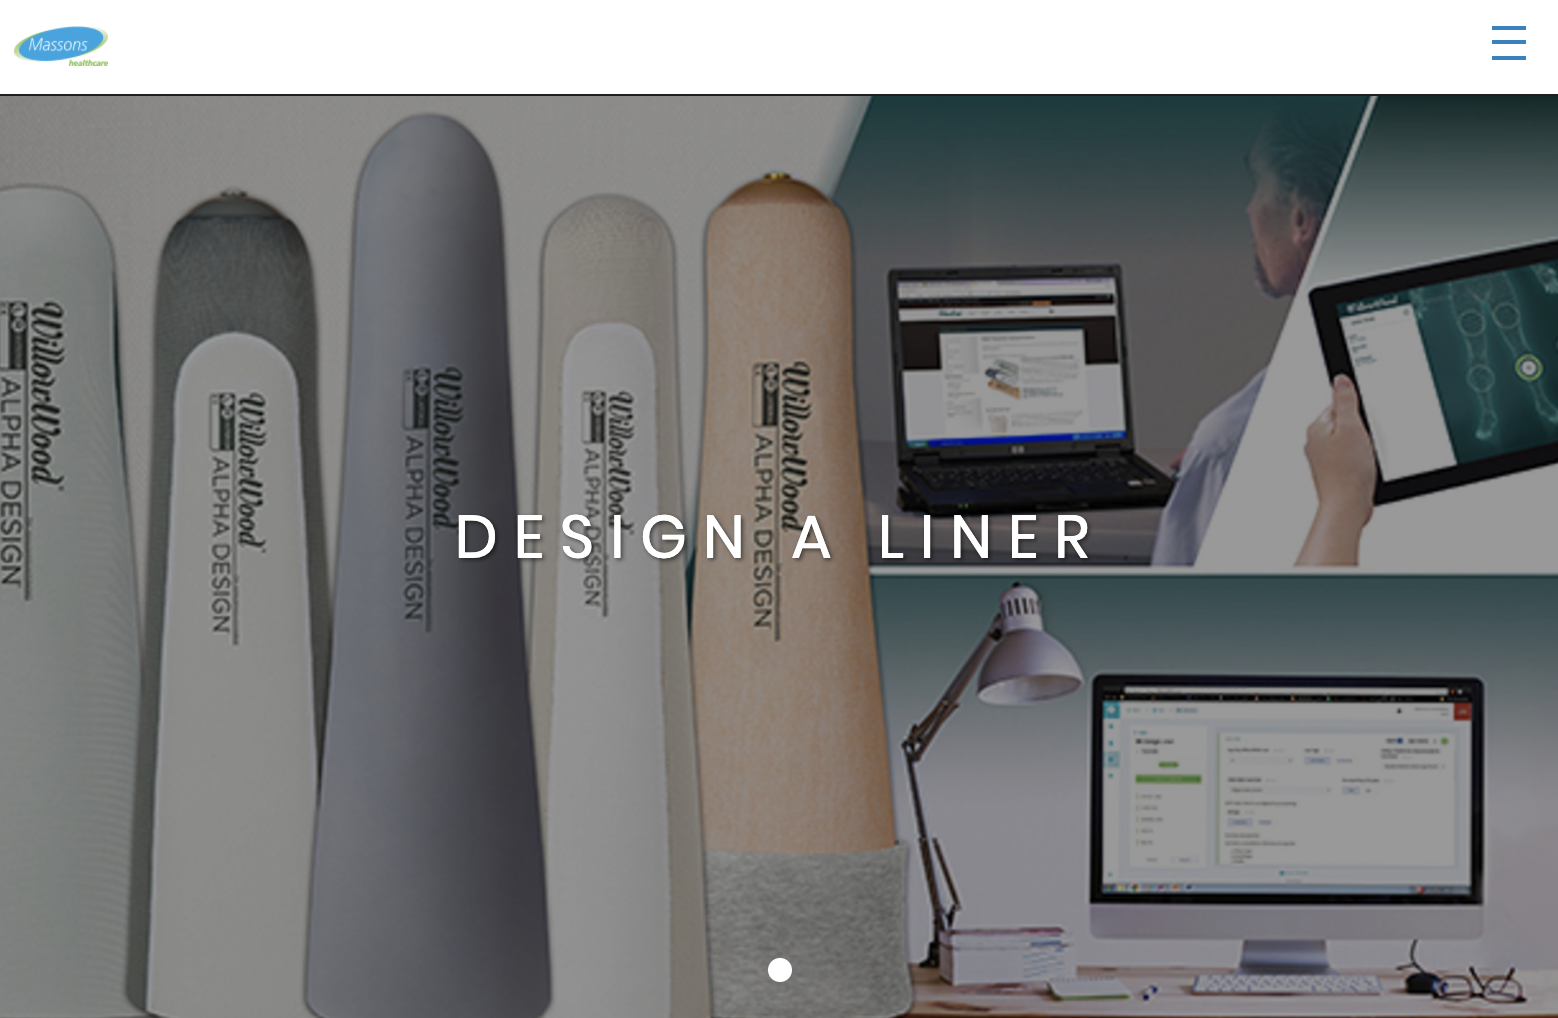 Design A Liner Website